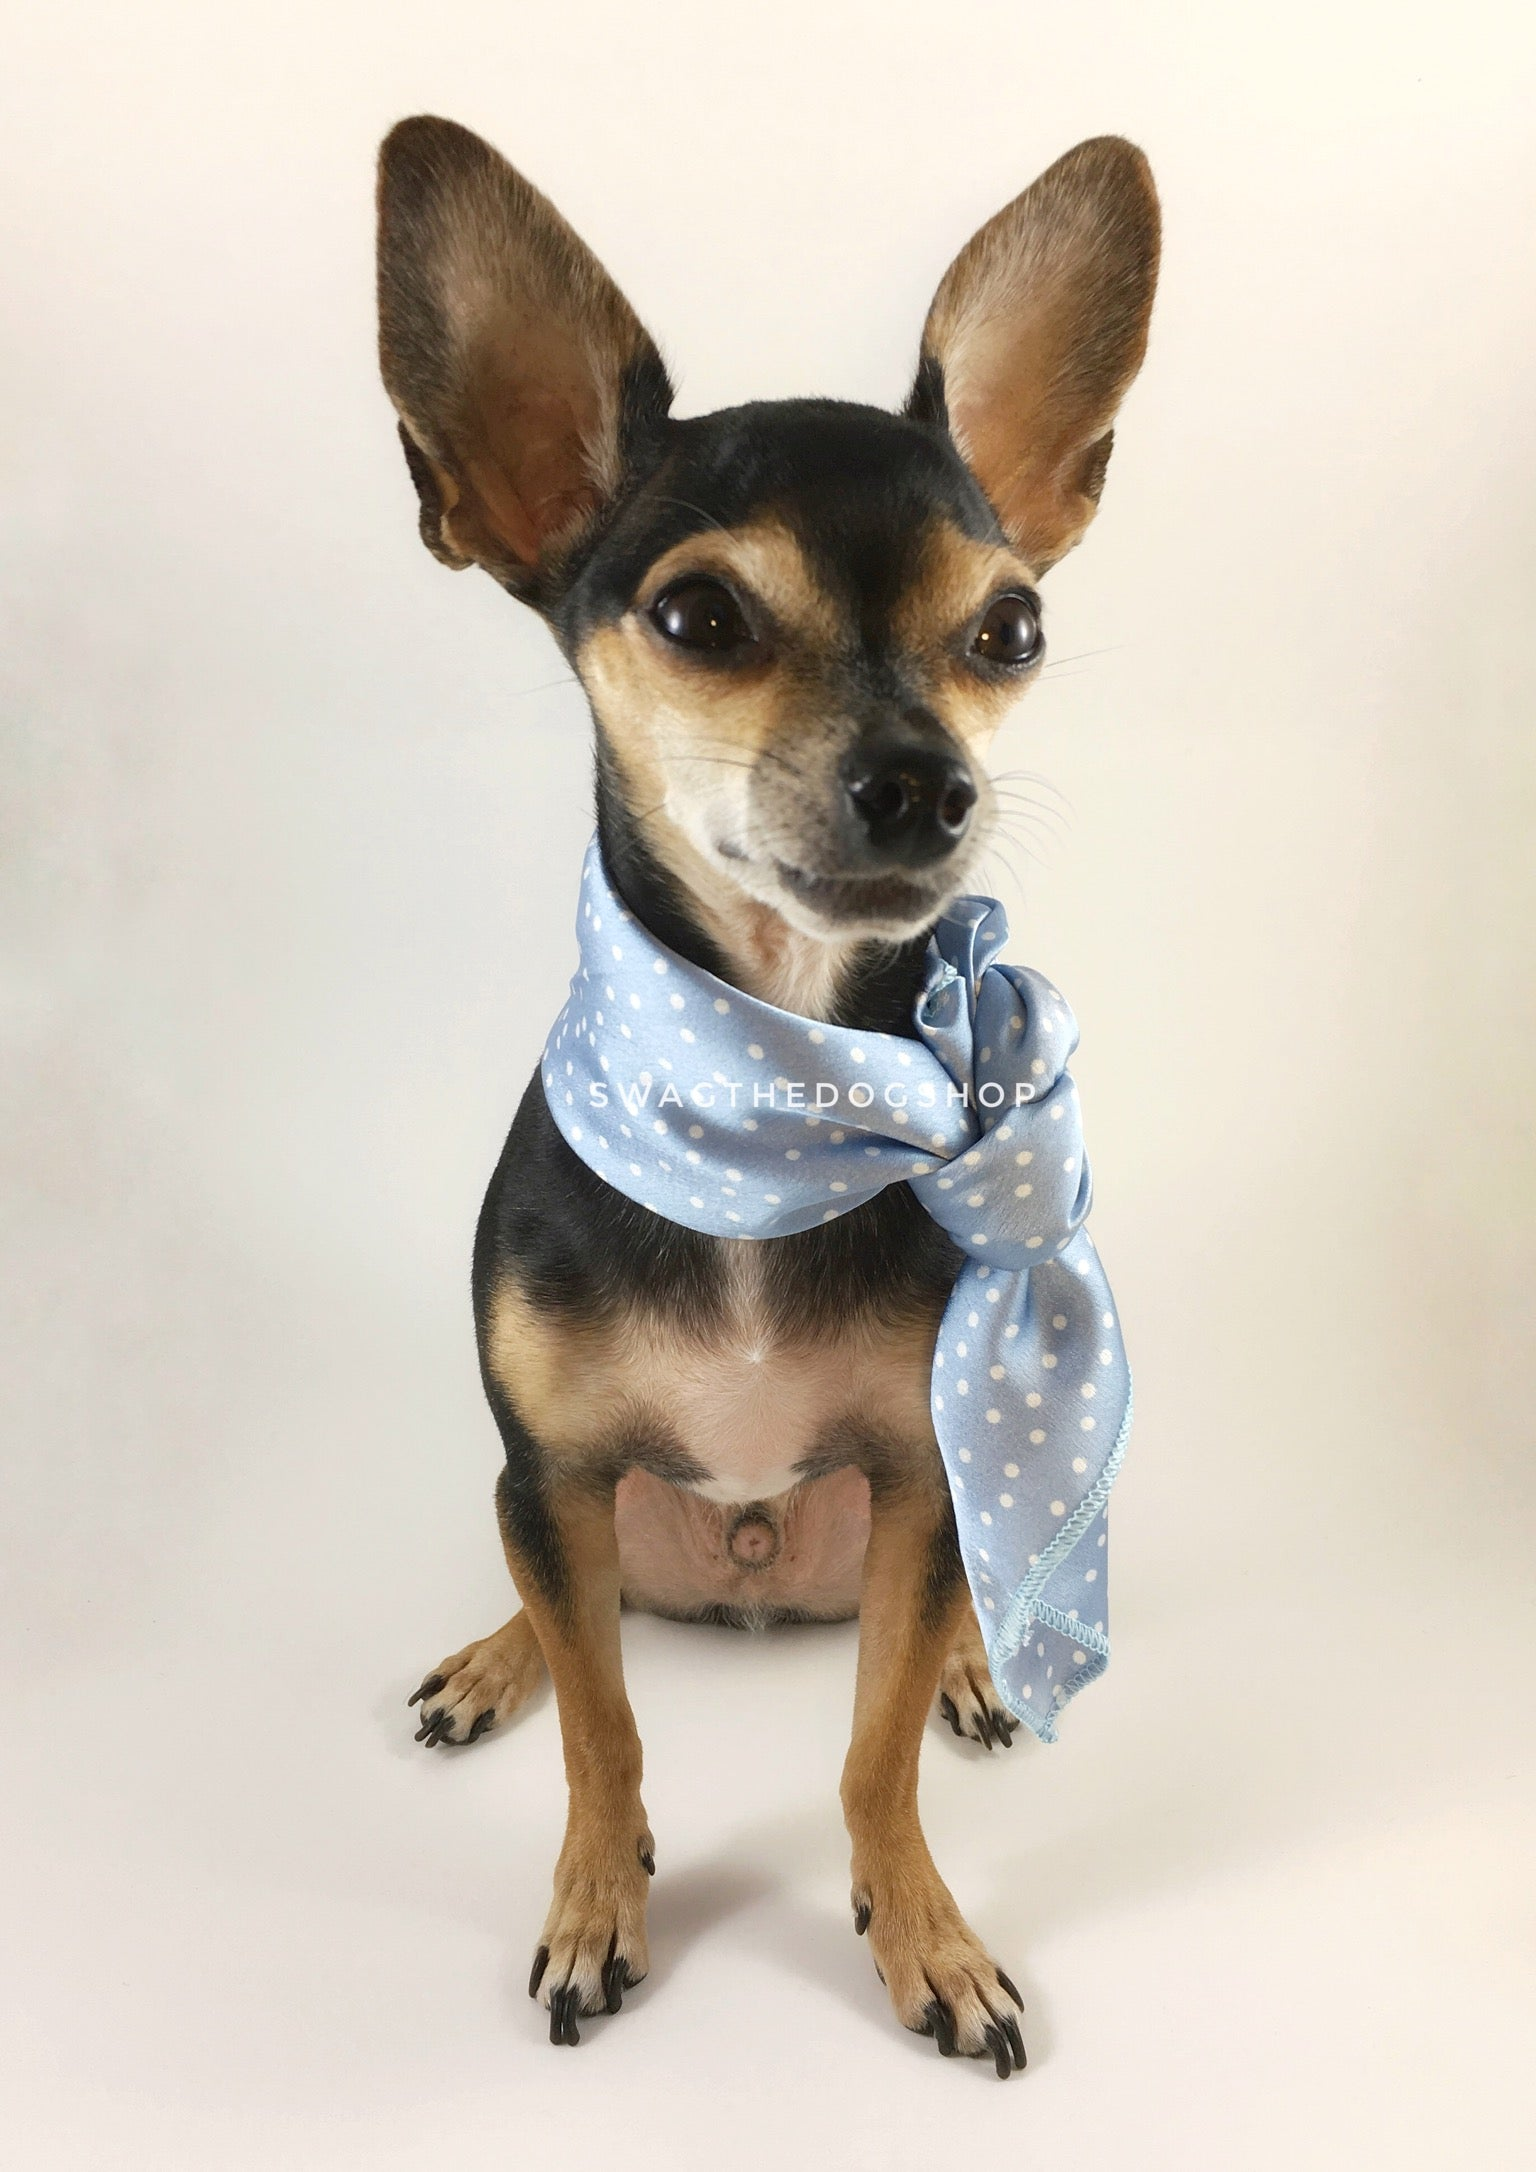 Polka Itty Bitty Powder Blue Swagdana Scarf - Full Frontal View of Cute Chihuahua Wearing Swagdana Scarf as Neckerchief. Dog Bandana. Dog Scarf.